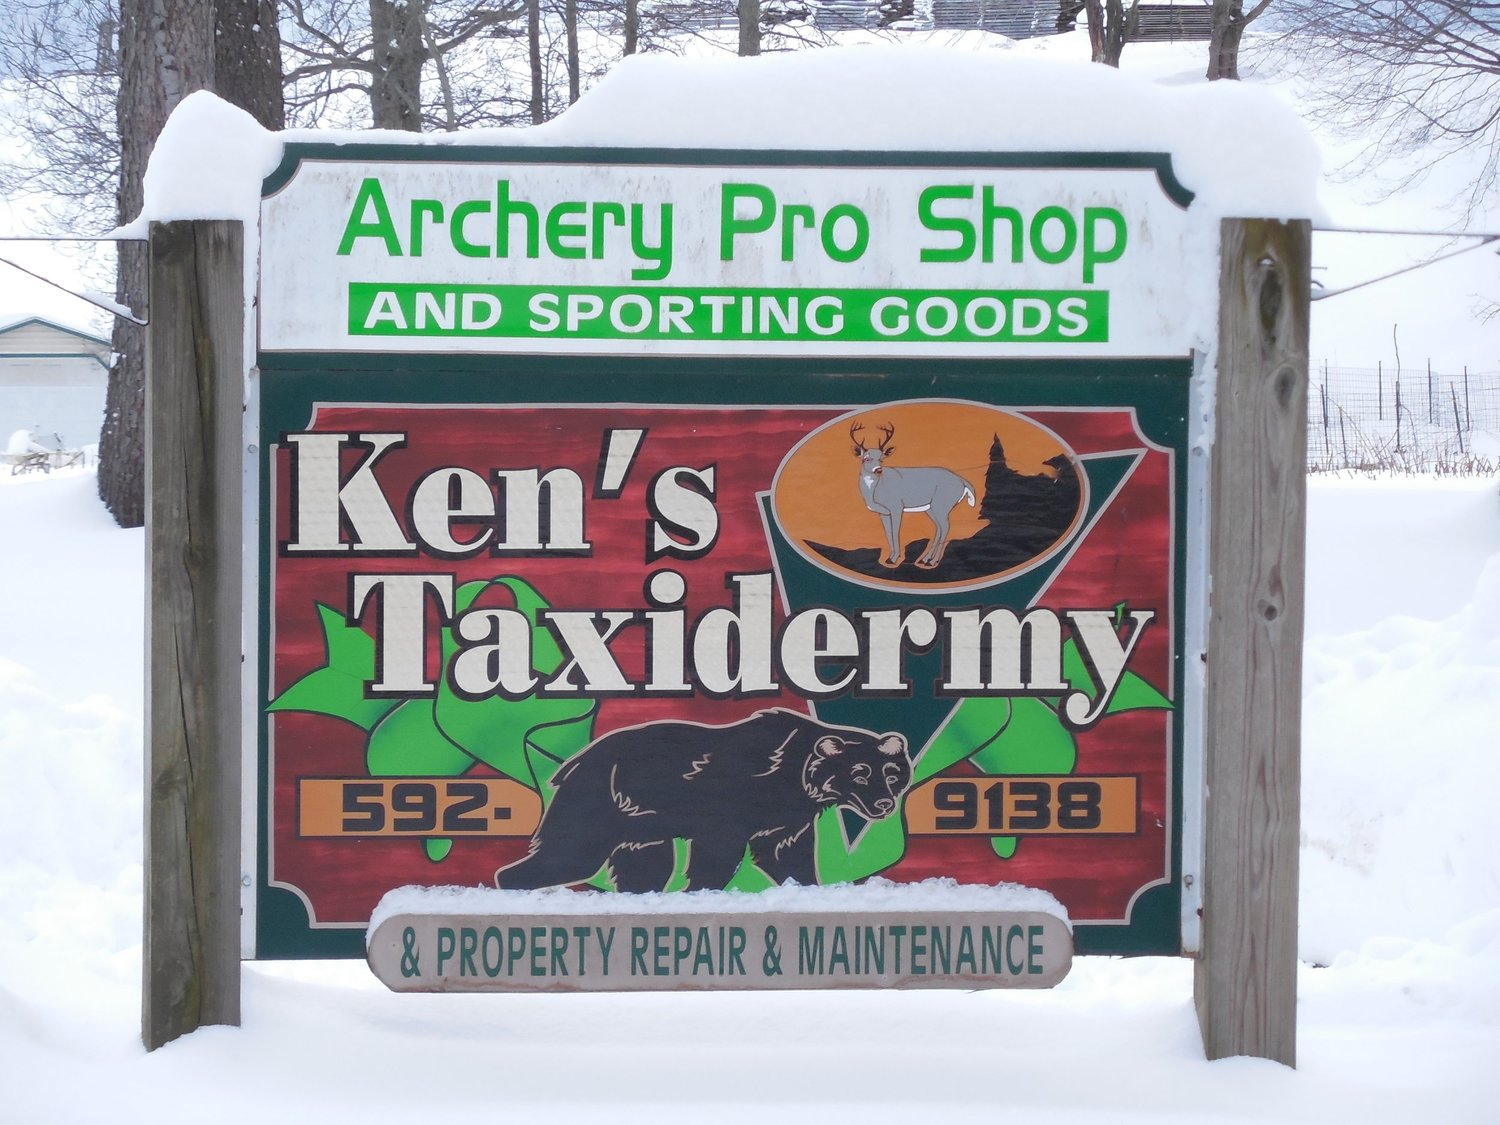 Ken's Taxidermy and Competition Shooting